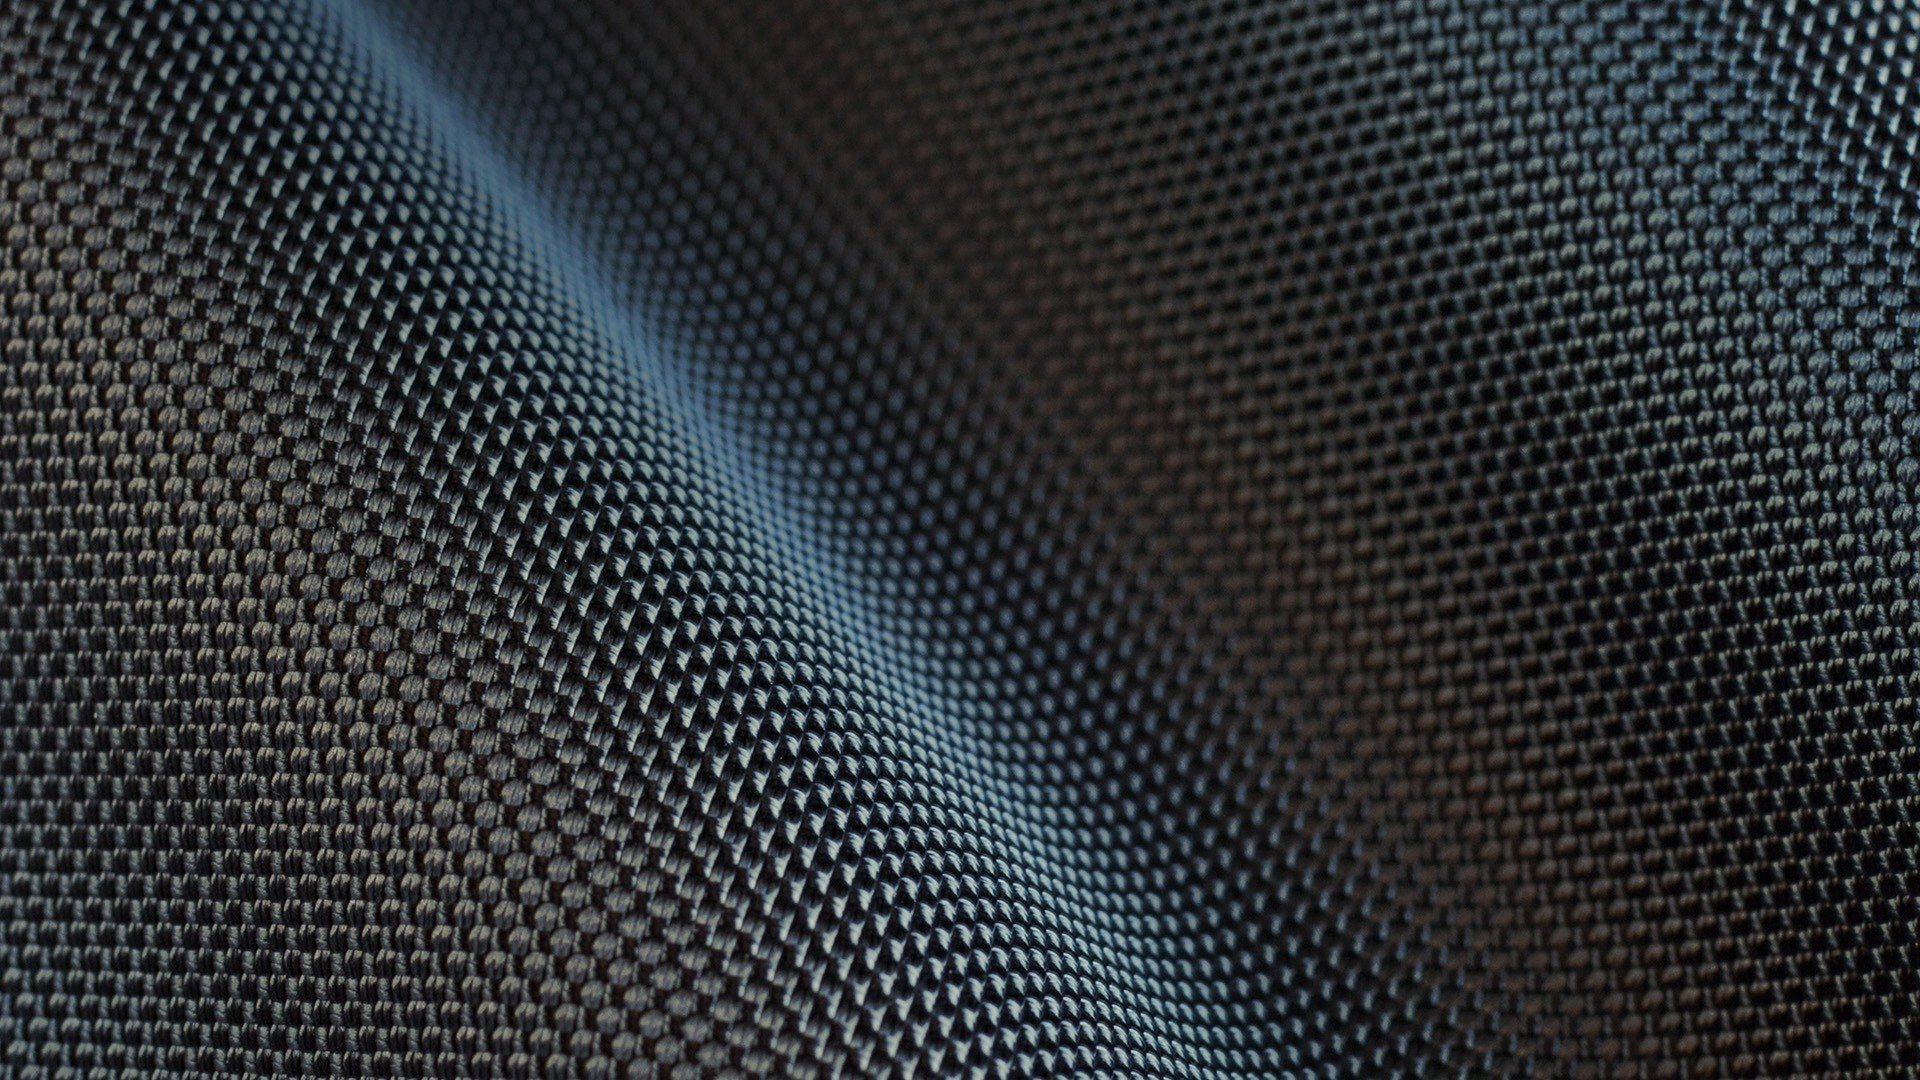 carbon fiber hd wallpaper (74+ images)